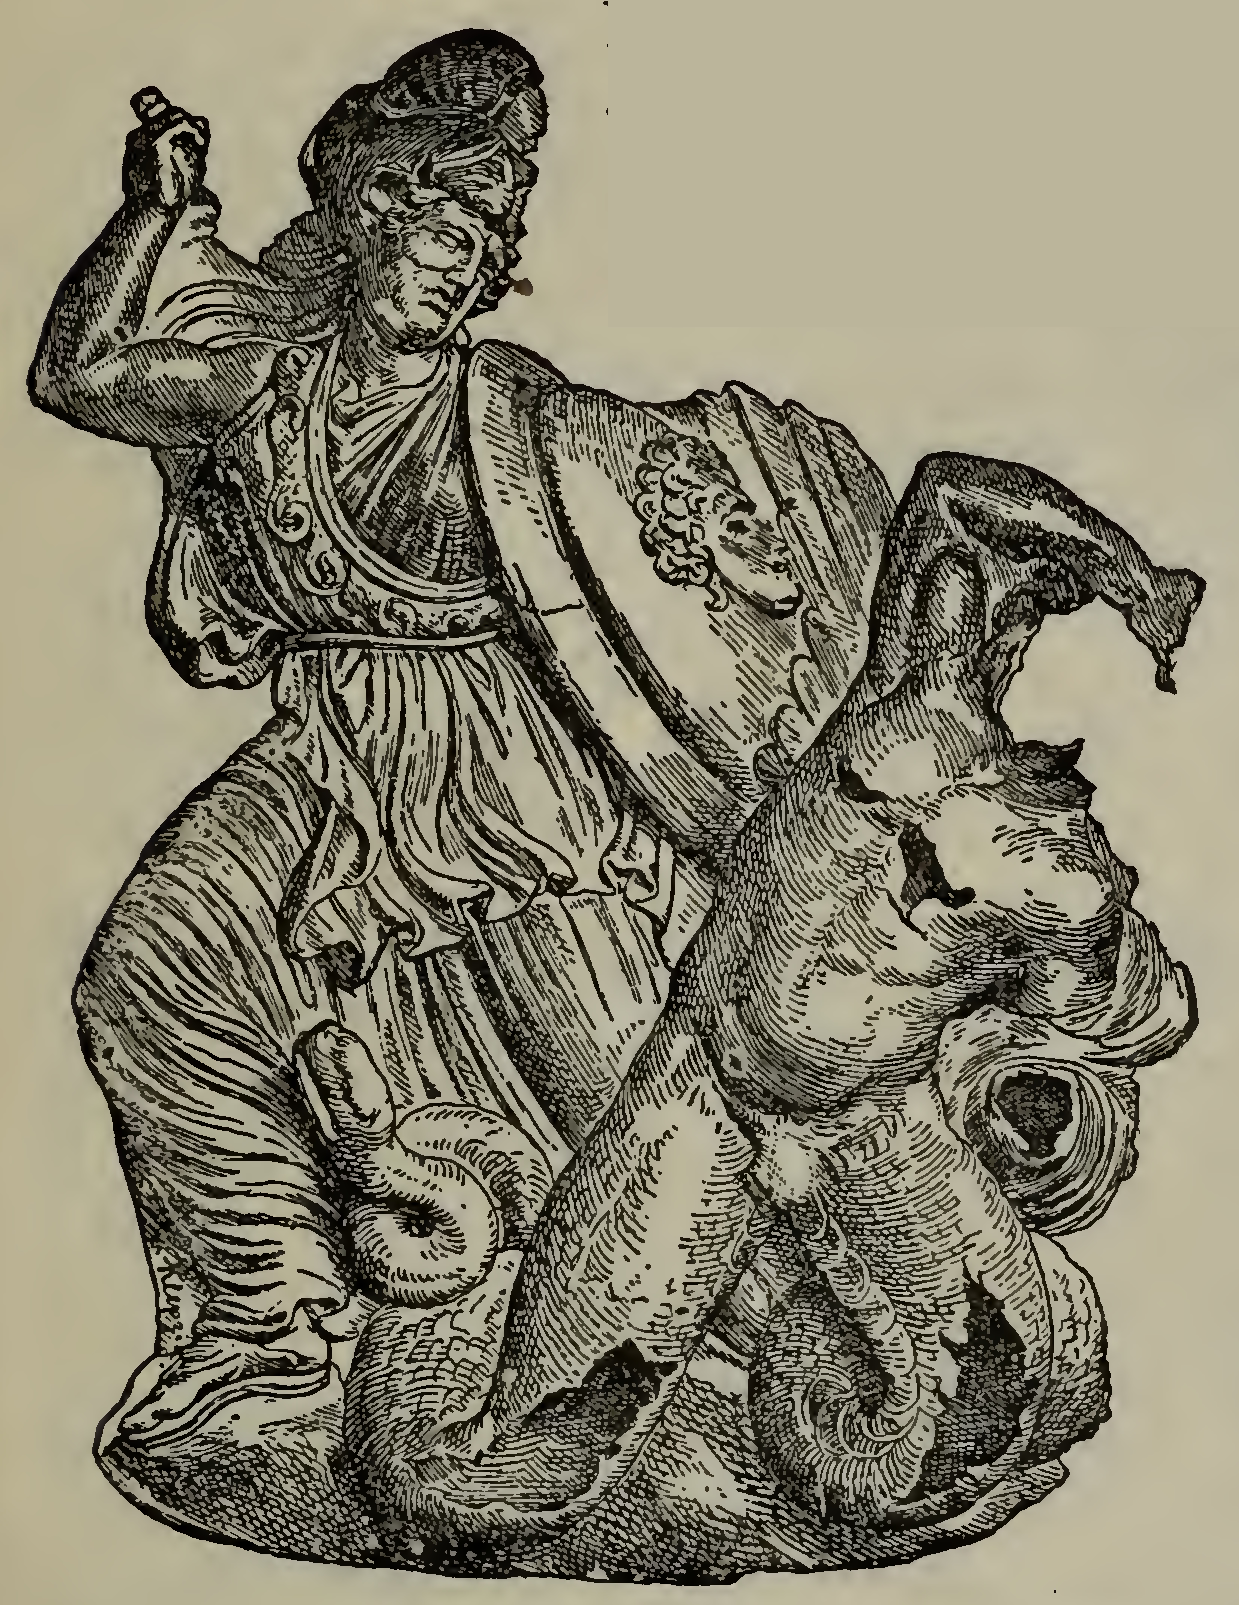 Classic Myths In English Literature Mythographie Obvil Wire Harness Branch Vocabulary Fig 2 Minerva Contending With A Giant Bronze Mus Kircherianum Journal Of Hellenic Studies 4 90 Roscher 10 1666